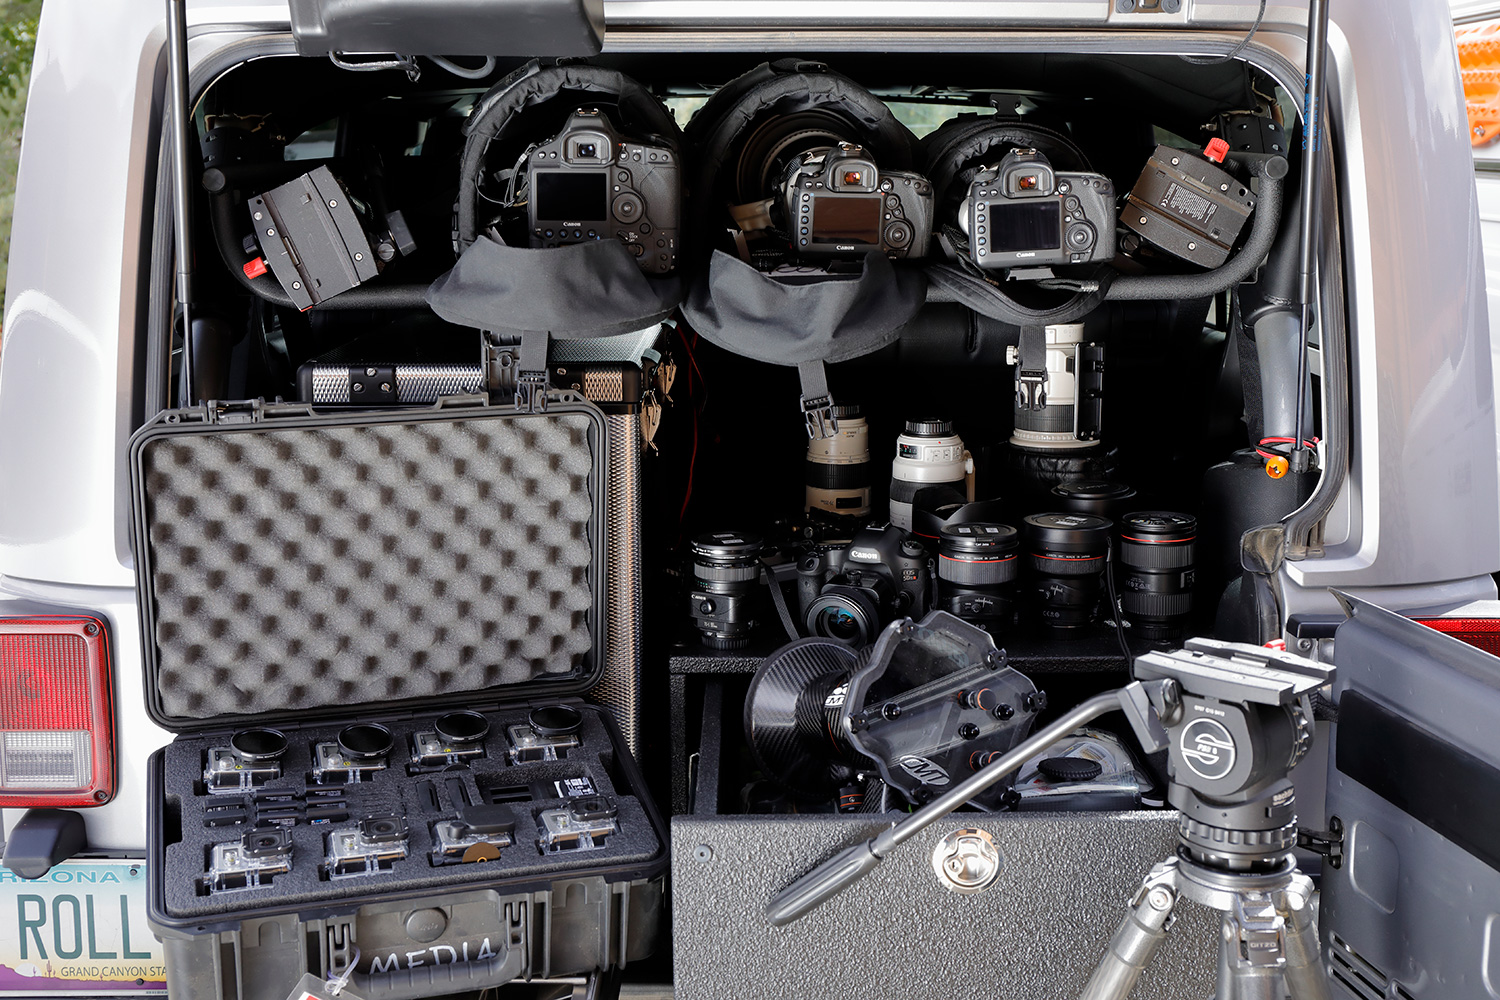 The photography gear that Bruce Dorn has in the back of his car. Who wouldn't want that?